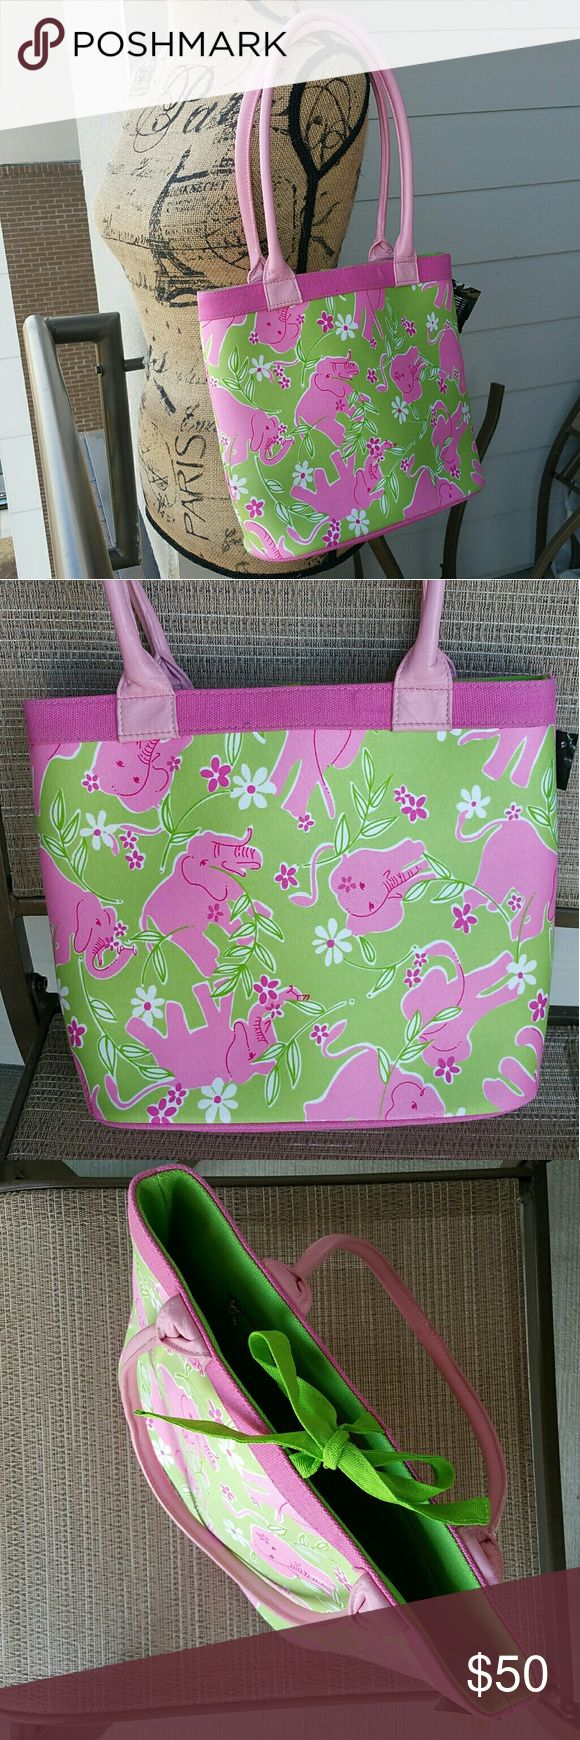 Lilly Pulitzer Elephant pink & green shoulder bag Minimally worn. In amazing condition! Lilly Pulitzer Bags Shoulder Bags